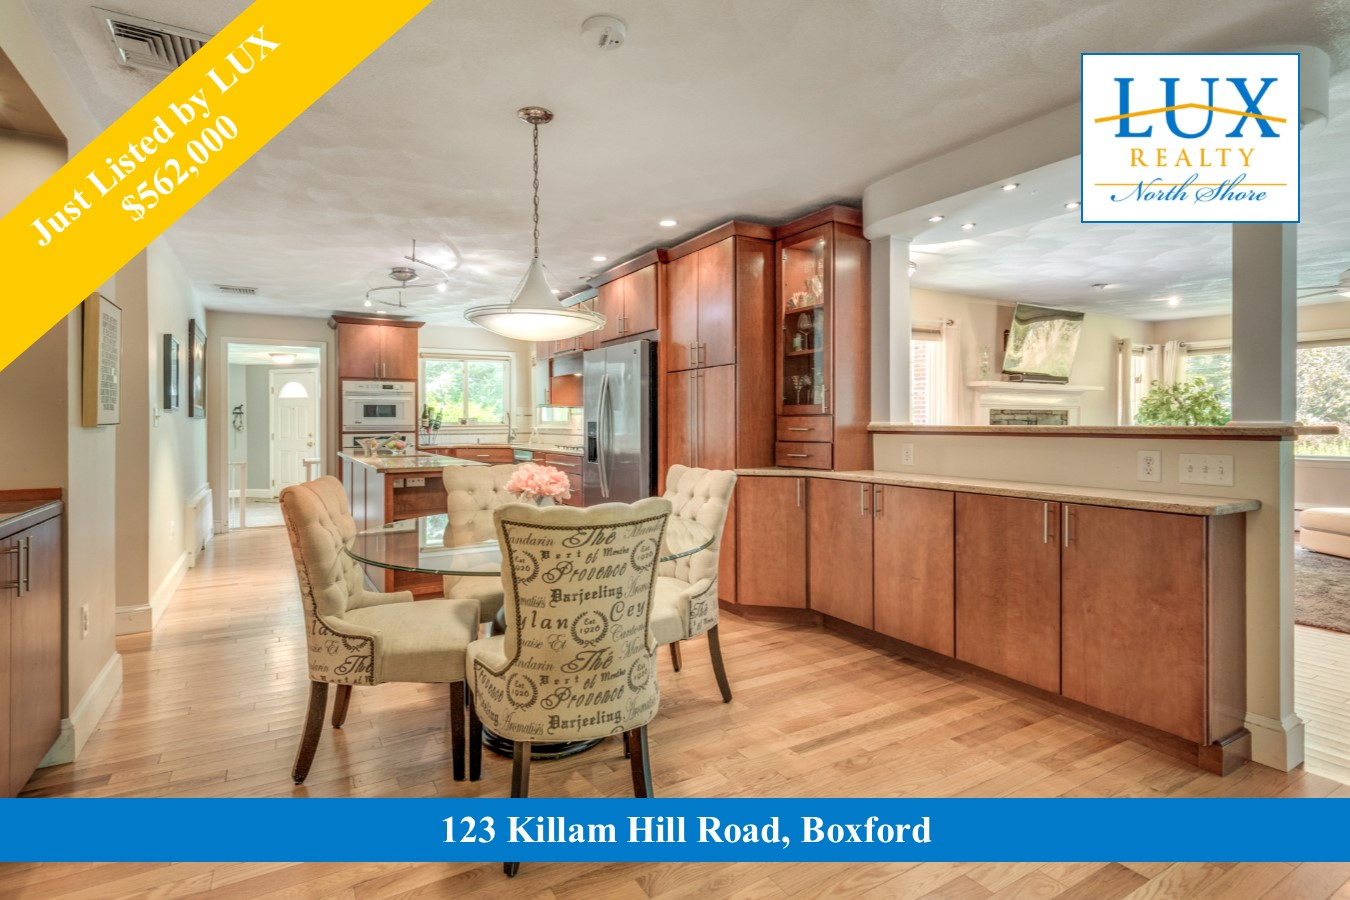 Boxford Homes for Sale